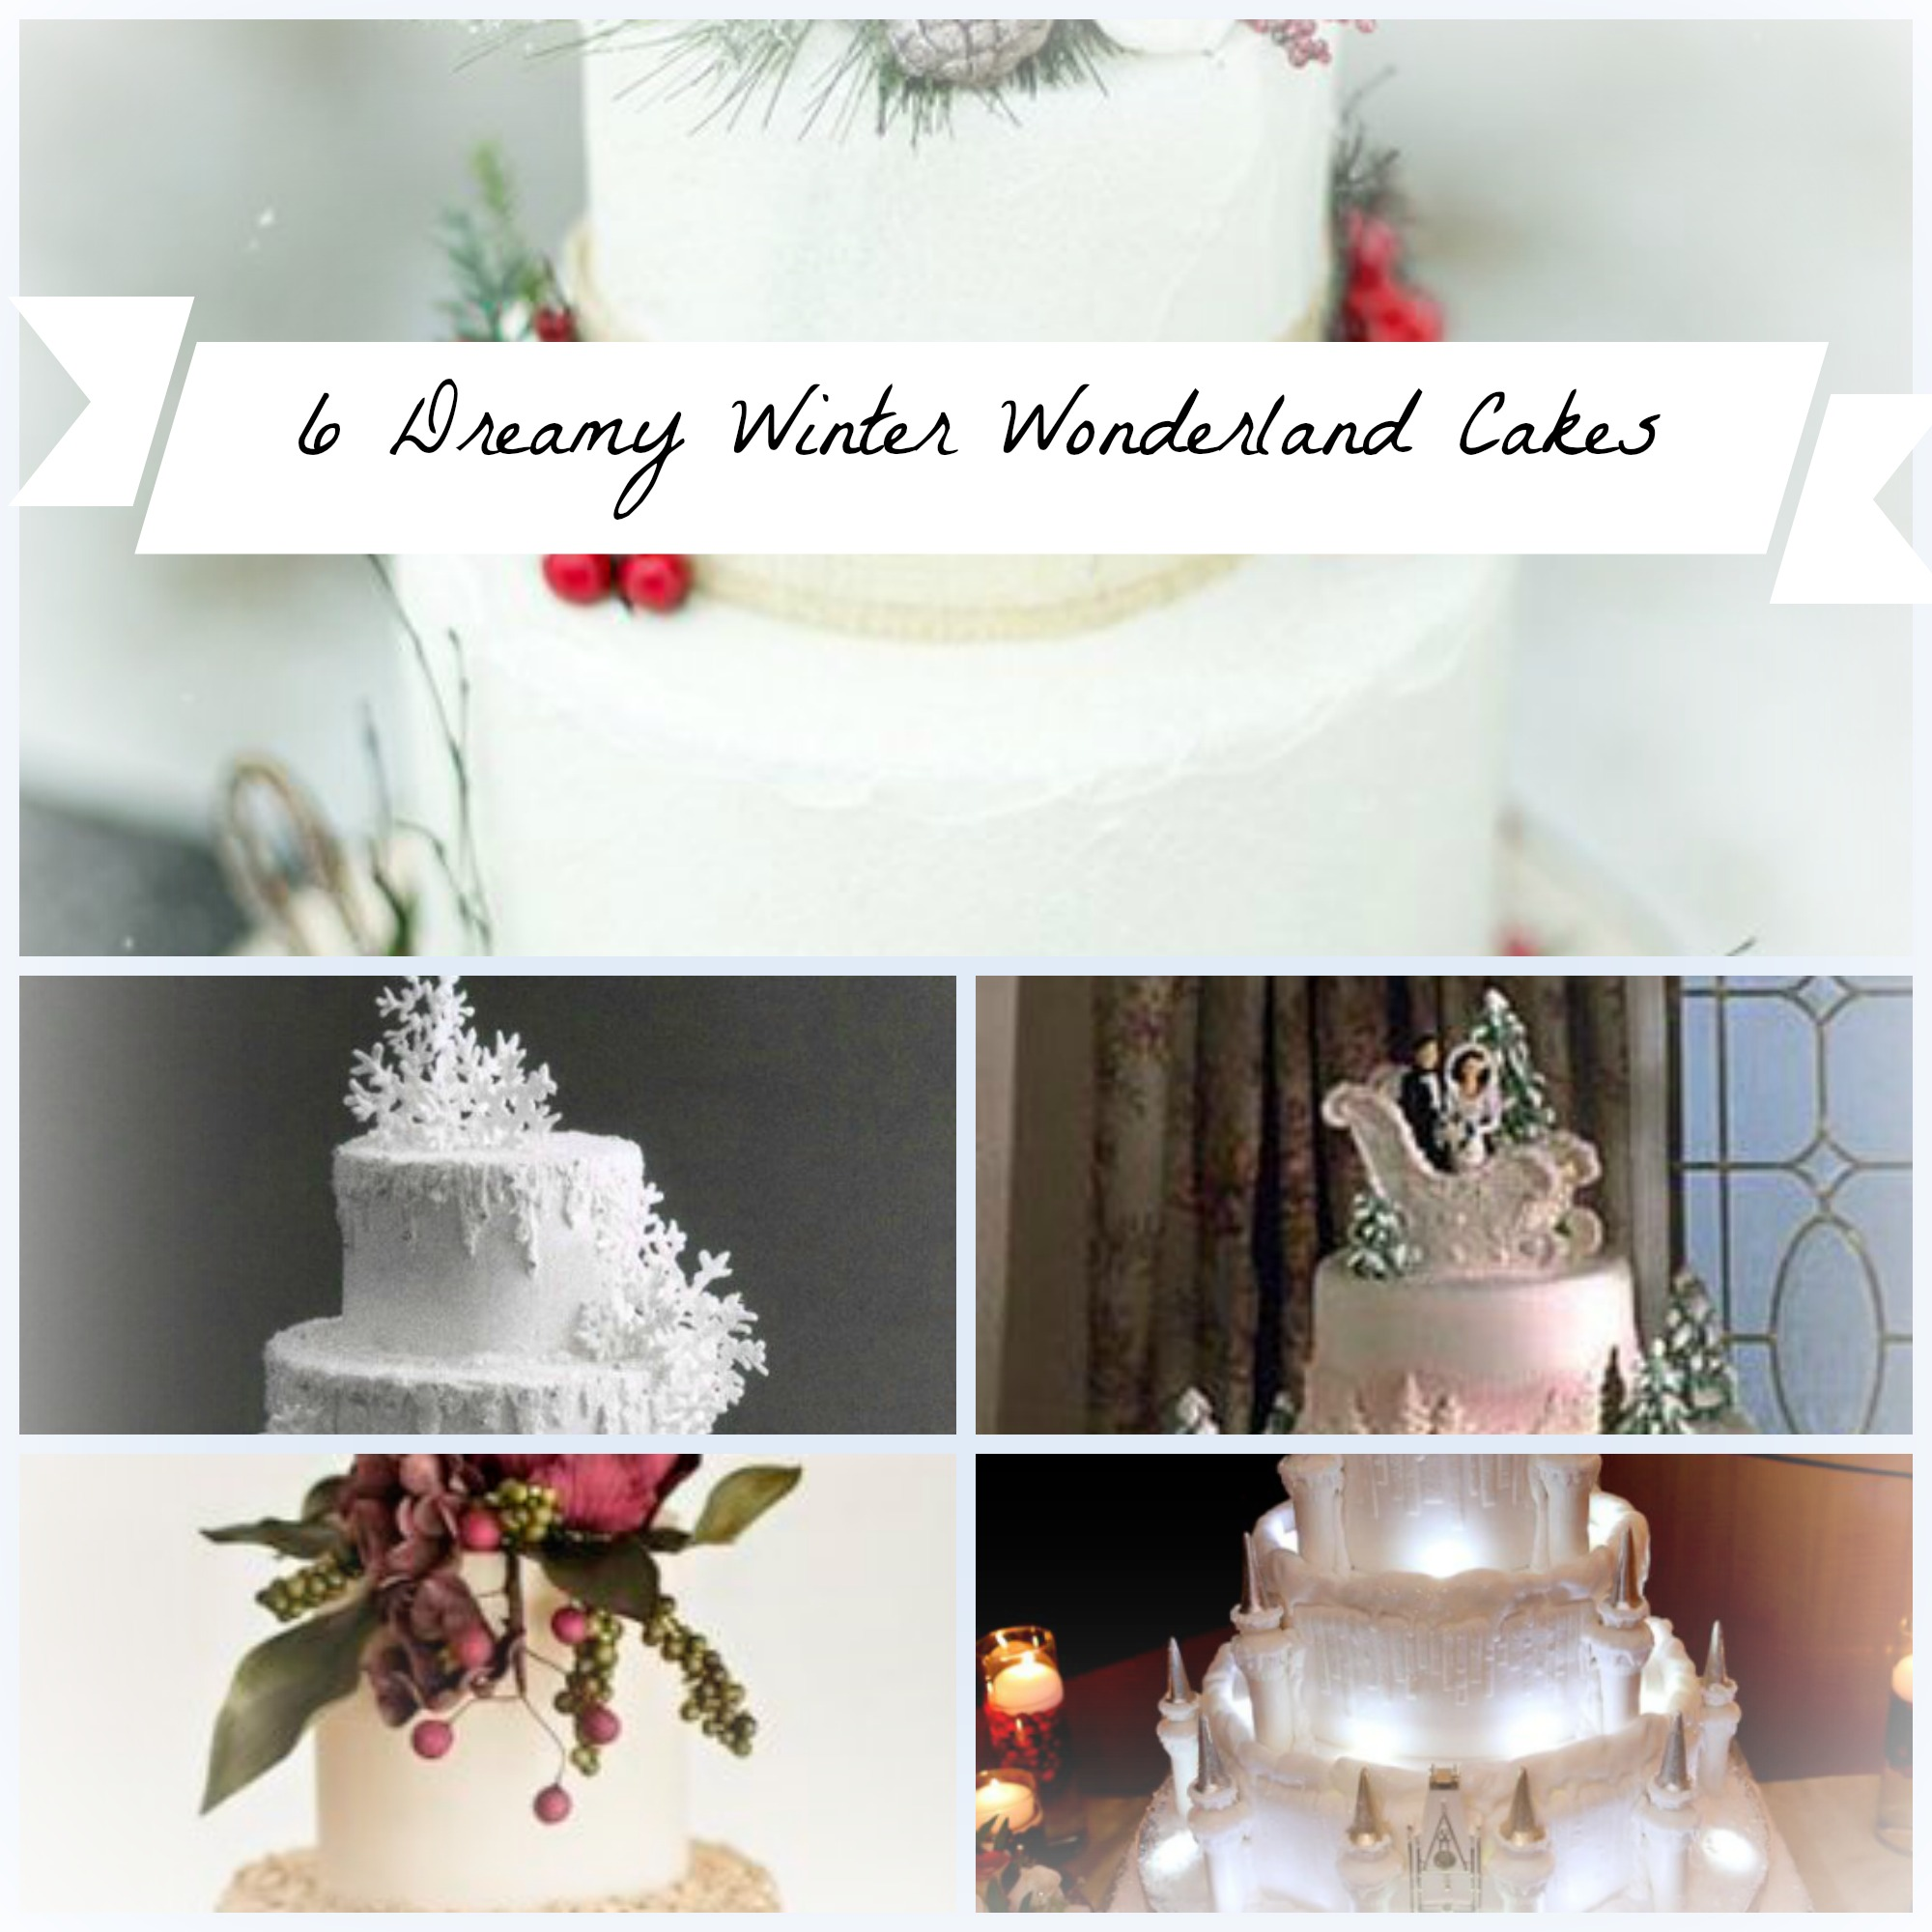 These 6 Super Dreamy Winter Wonderland Wedding Cakes Are Shaking Up The Baking World!